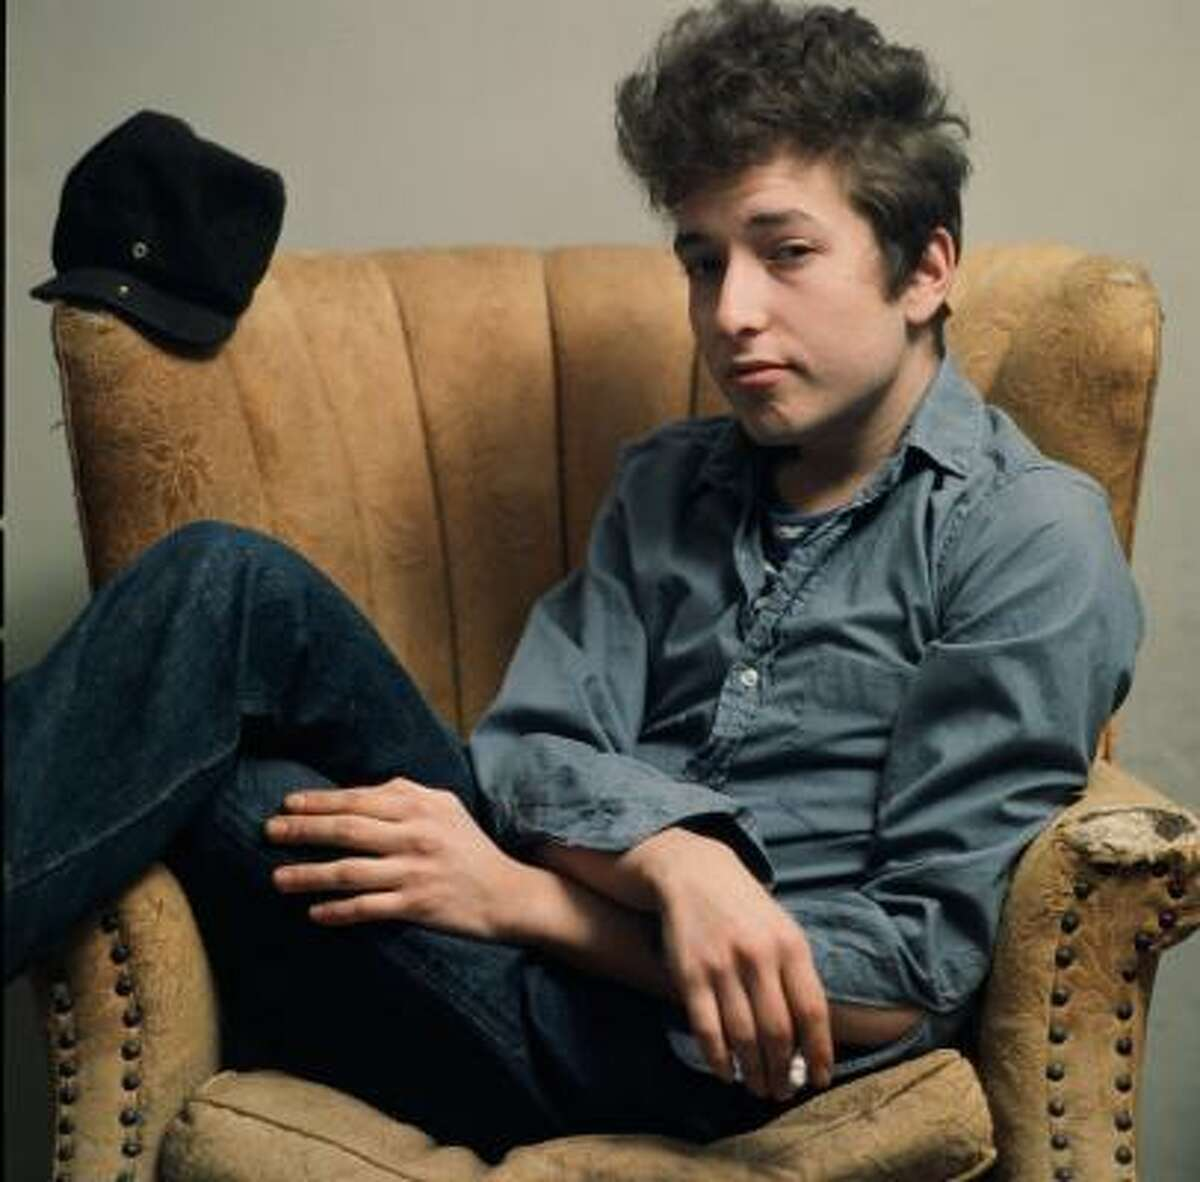 Bob Dylan, shown in a 1963 photo, has stayed true to himself throughout his career.